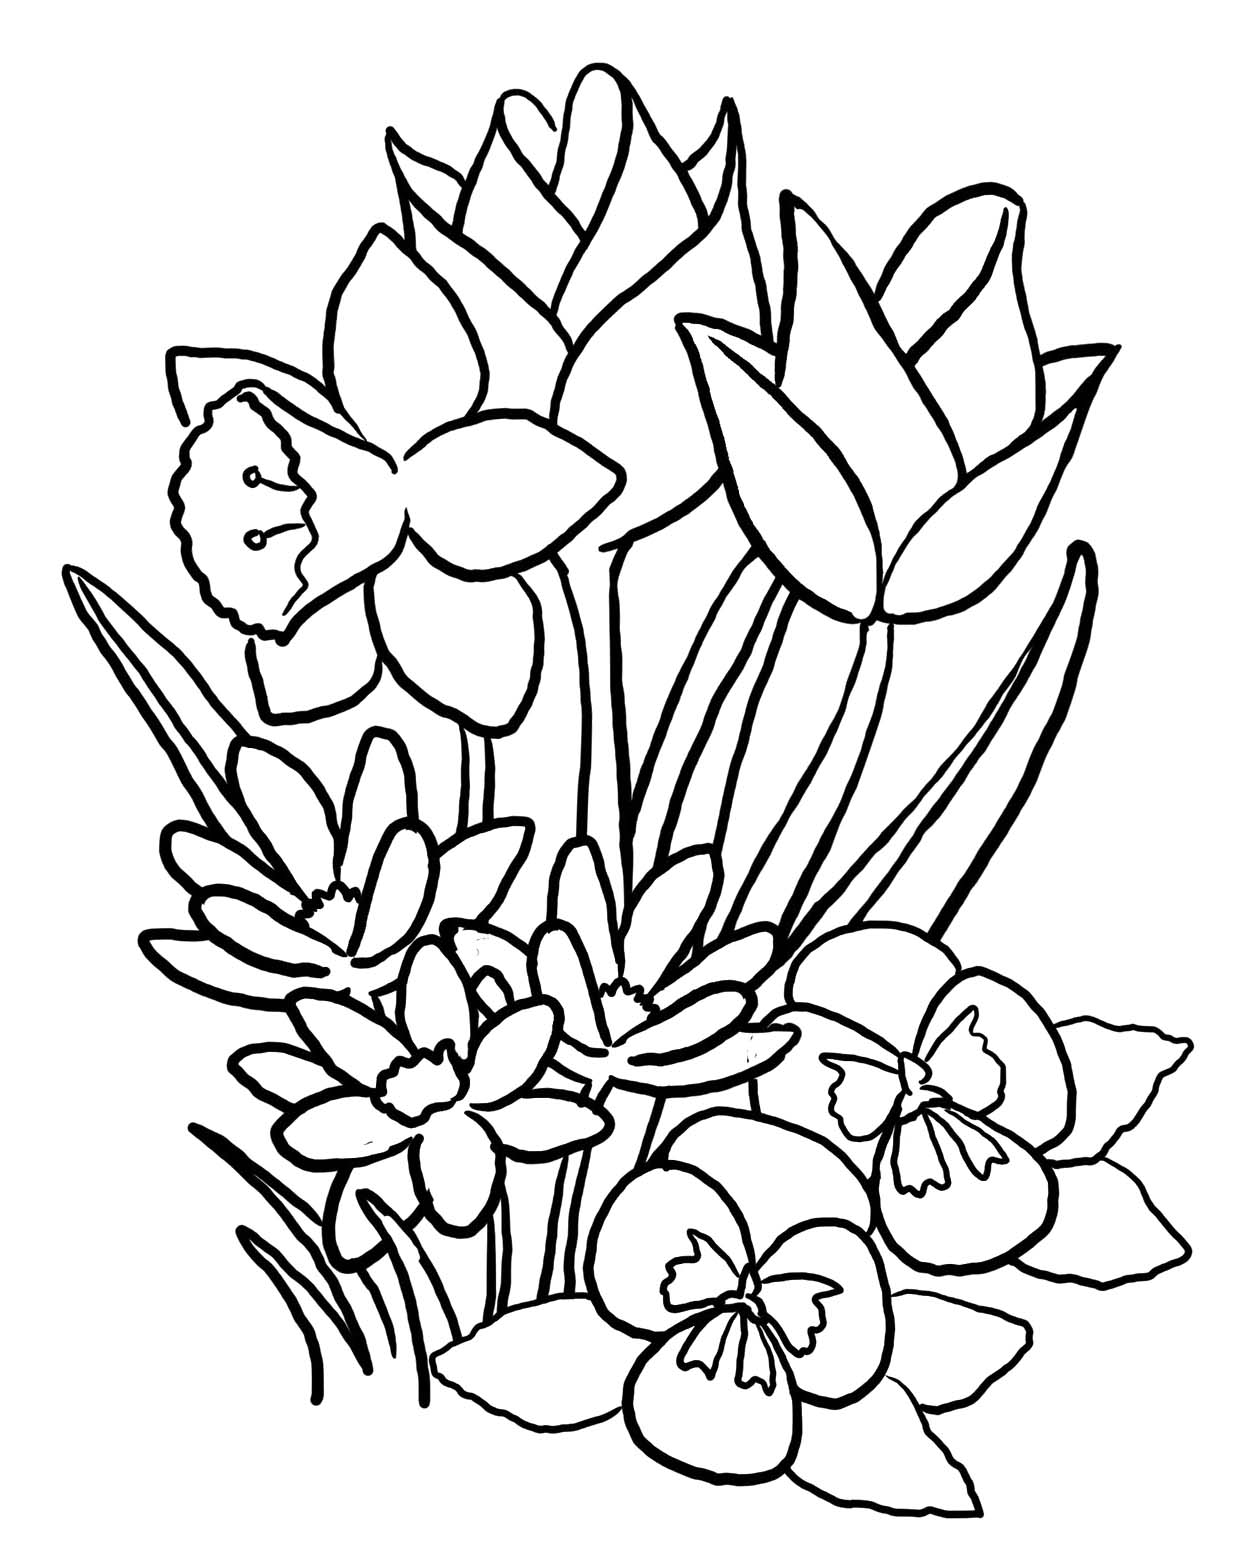 flower coloring page guitar coloring pages to print flower page coloring